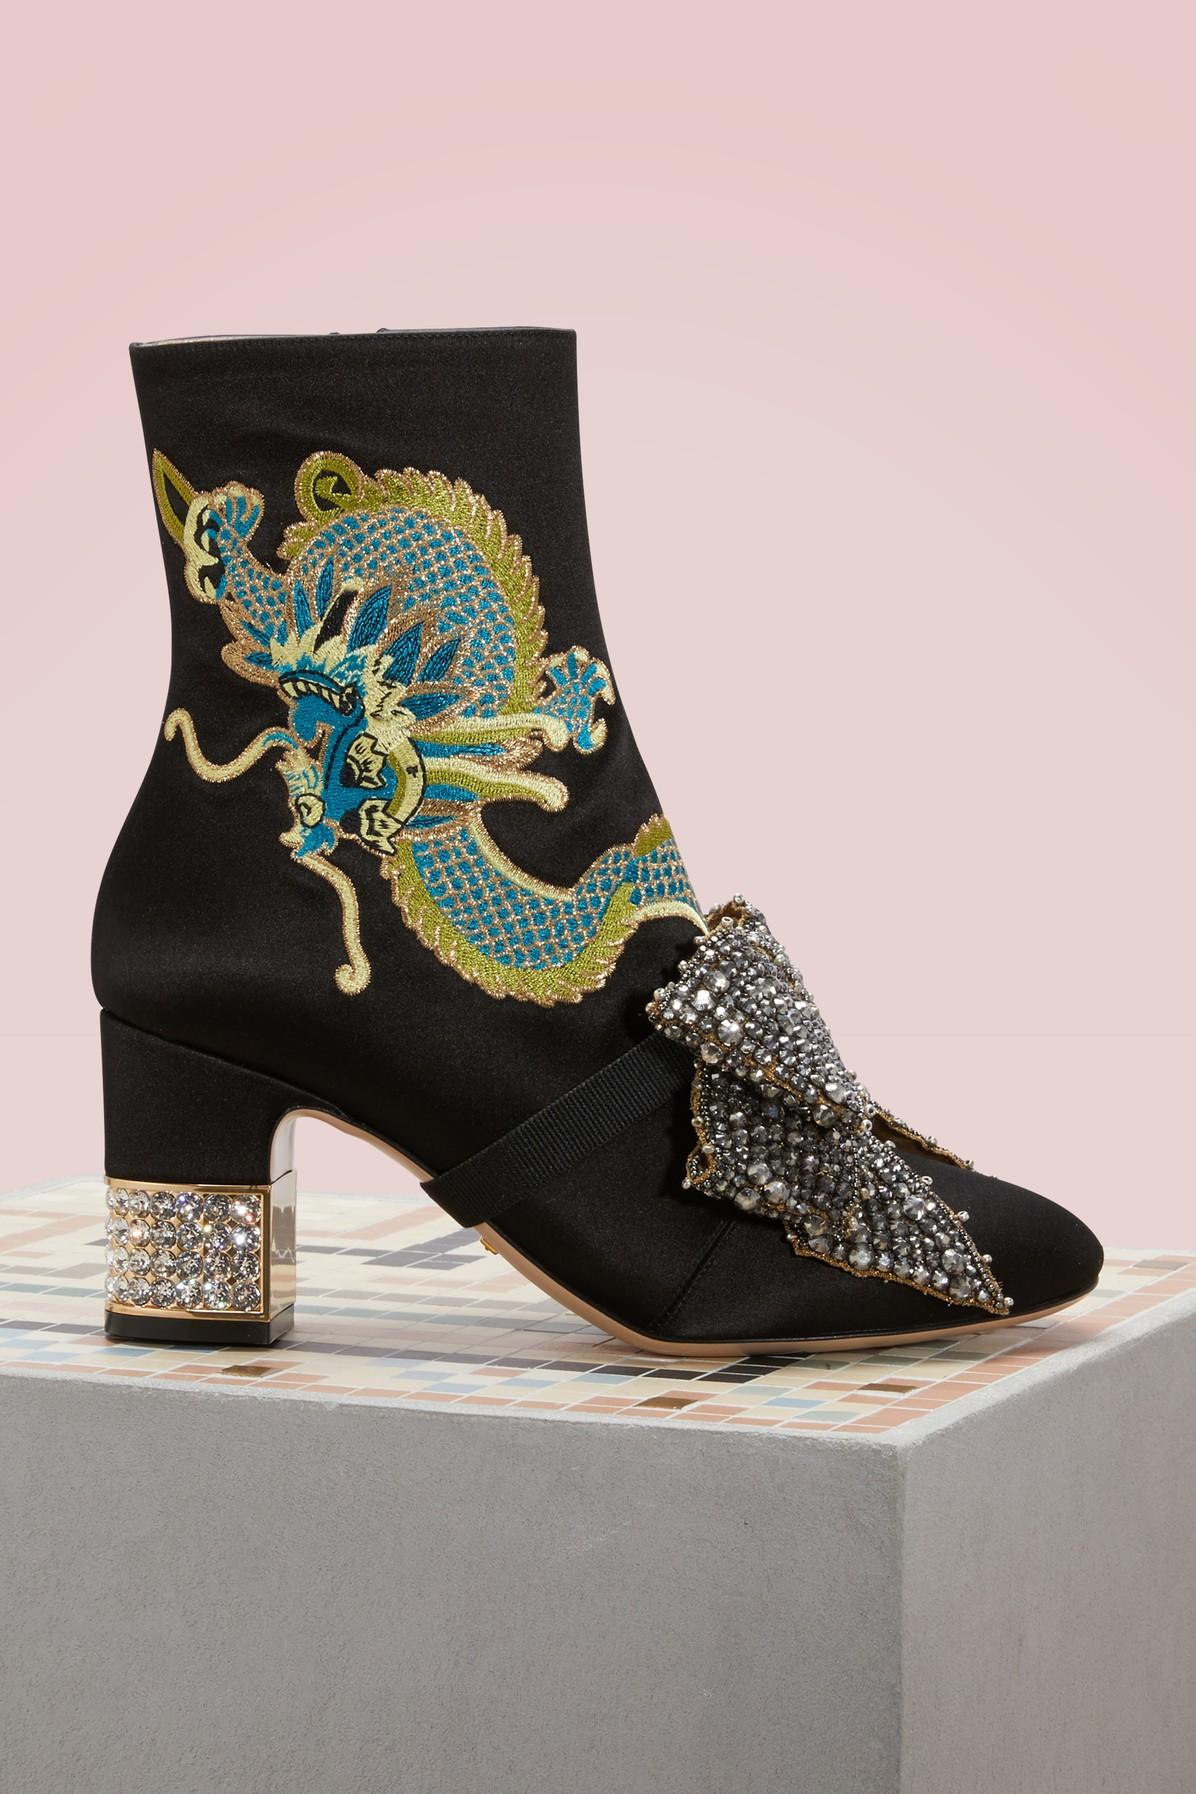 Where Can I Buy Jimmy Choo Shoes In Uk